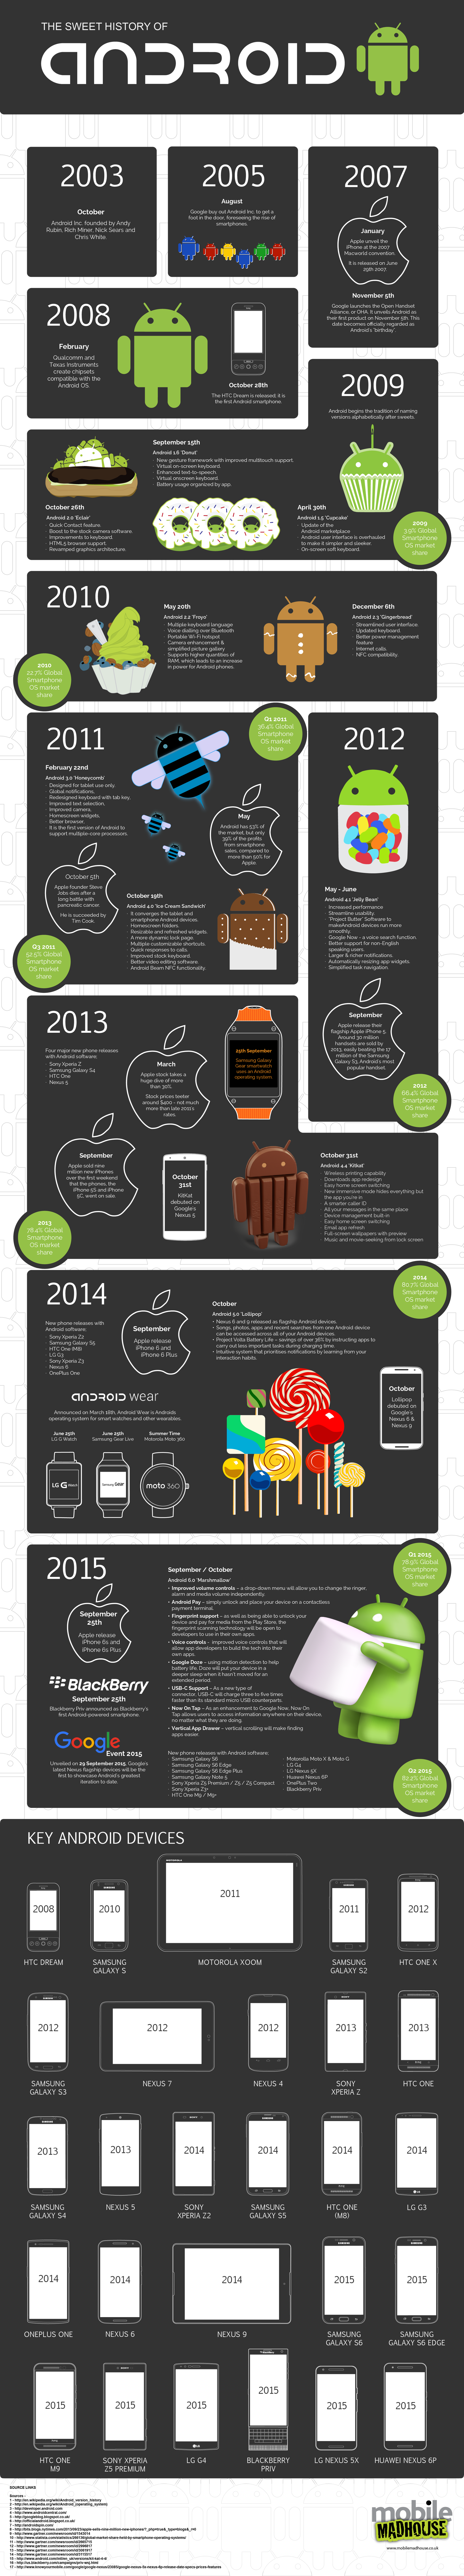 A History of Android Infographic